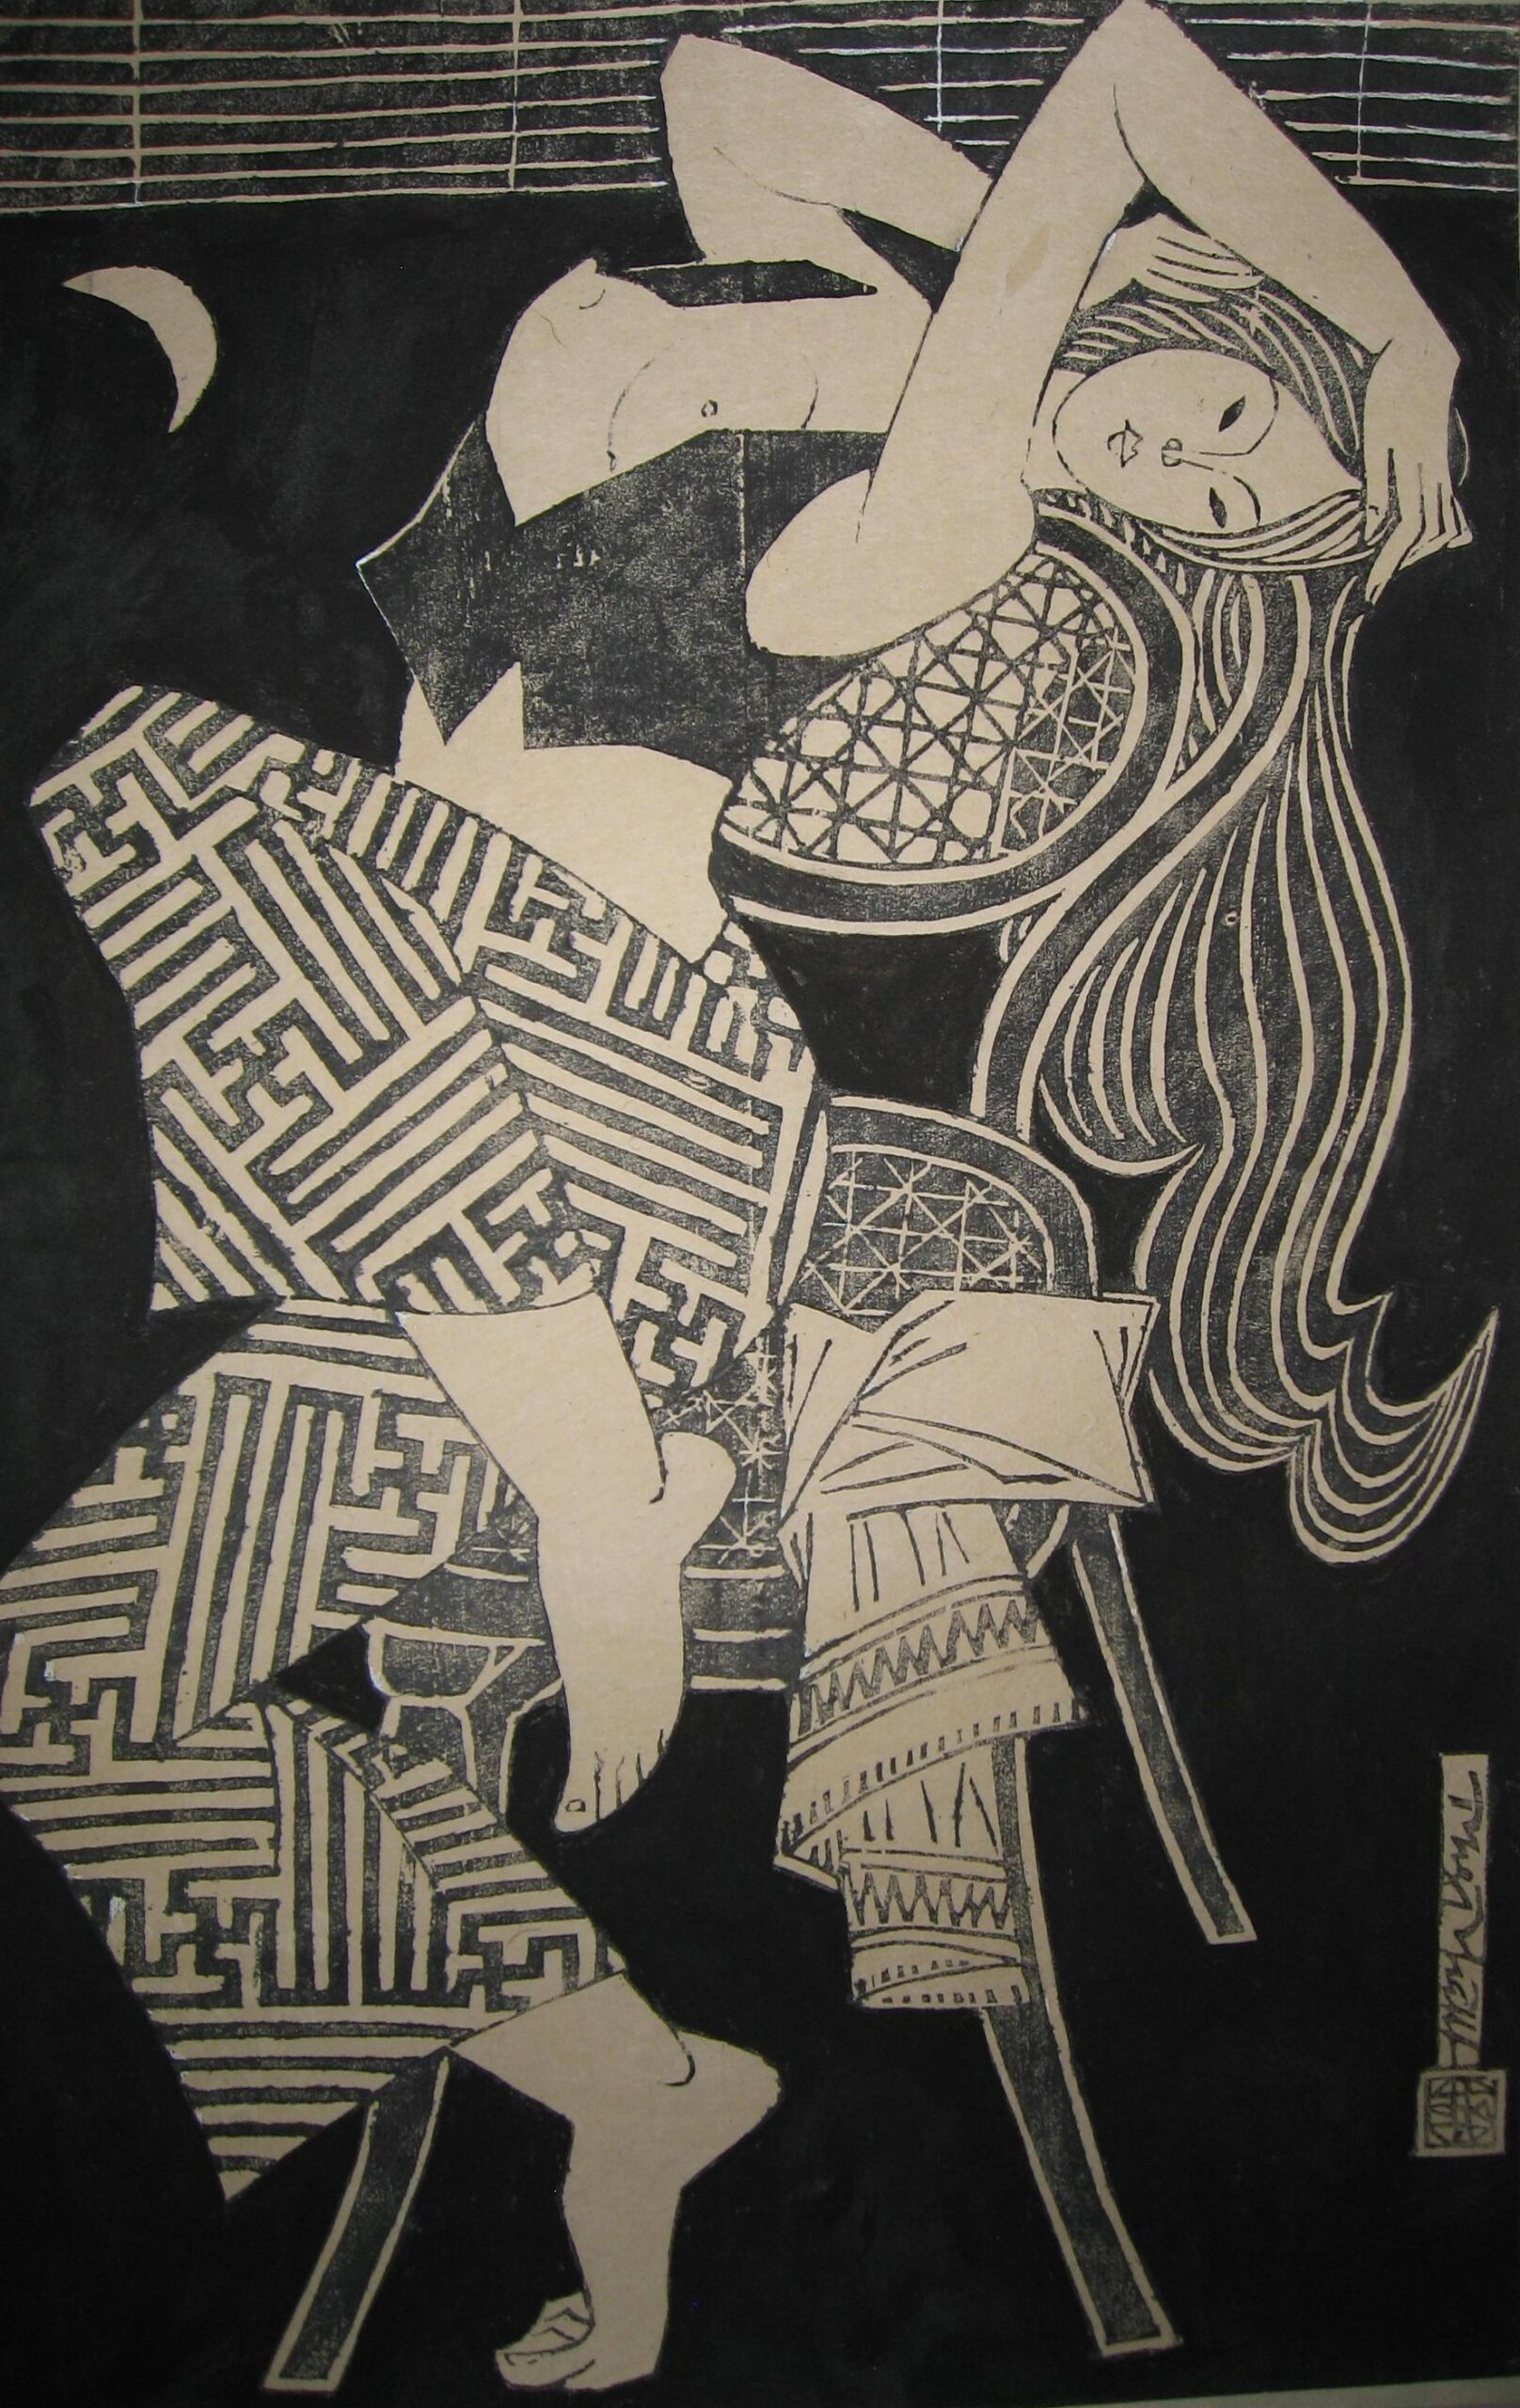 At the Threshold by Phung Pham, limited edition woodblock print, 2002, 68 x 45 cm